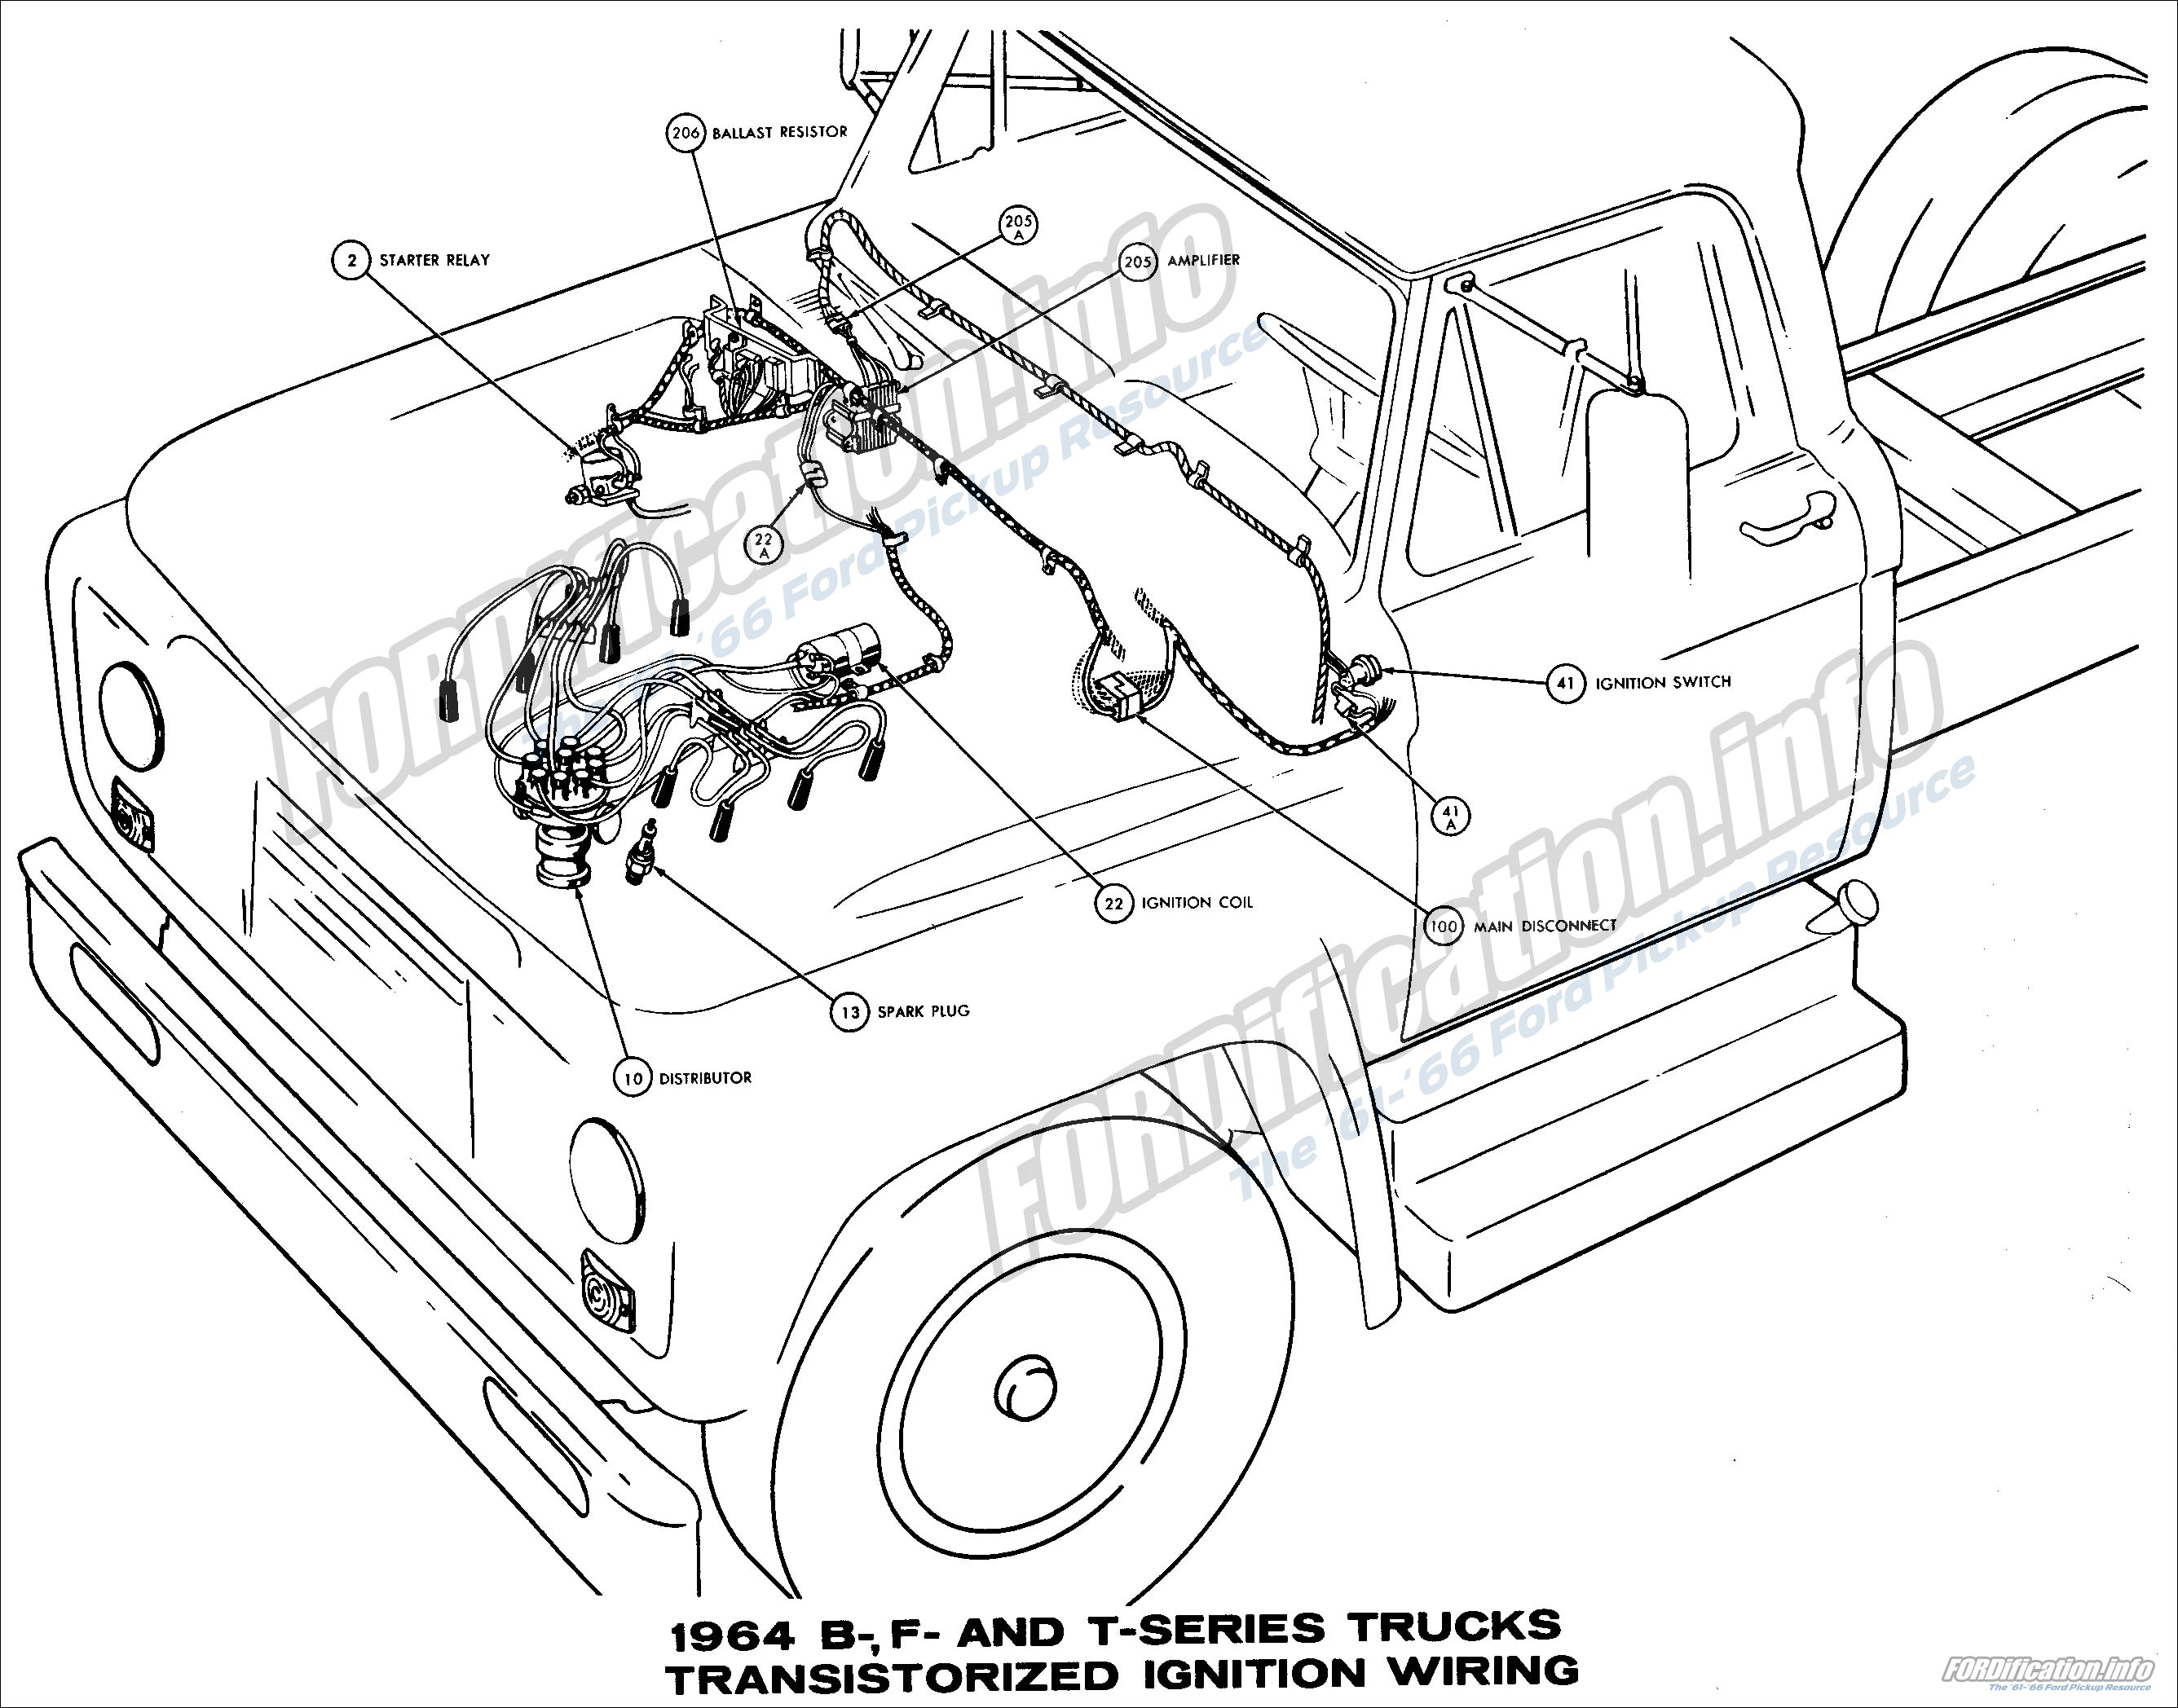 1964 b f and t series trucks transistorized ignition wiring